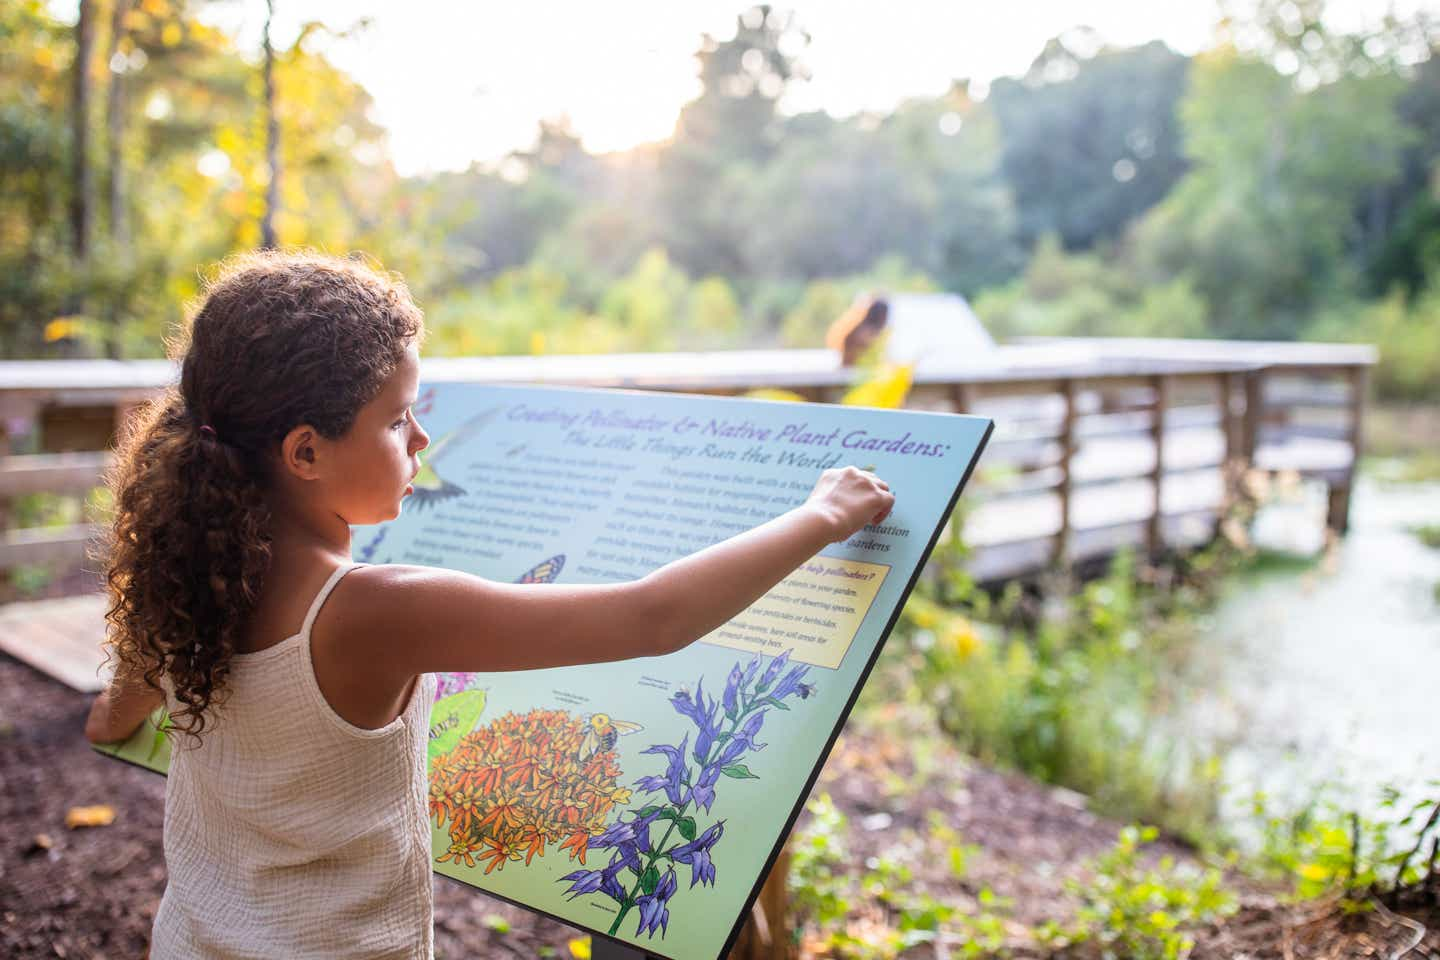 Author, Brenda Rivera Sterns' daughter reads an informational sign at Myrtle Beach State Park, South Carolina.